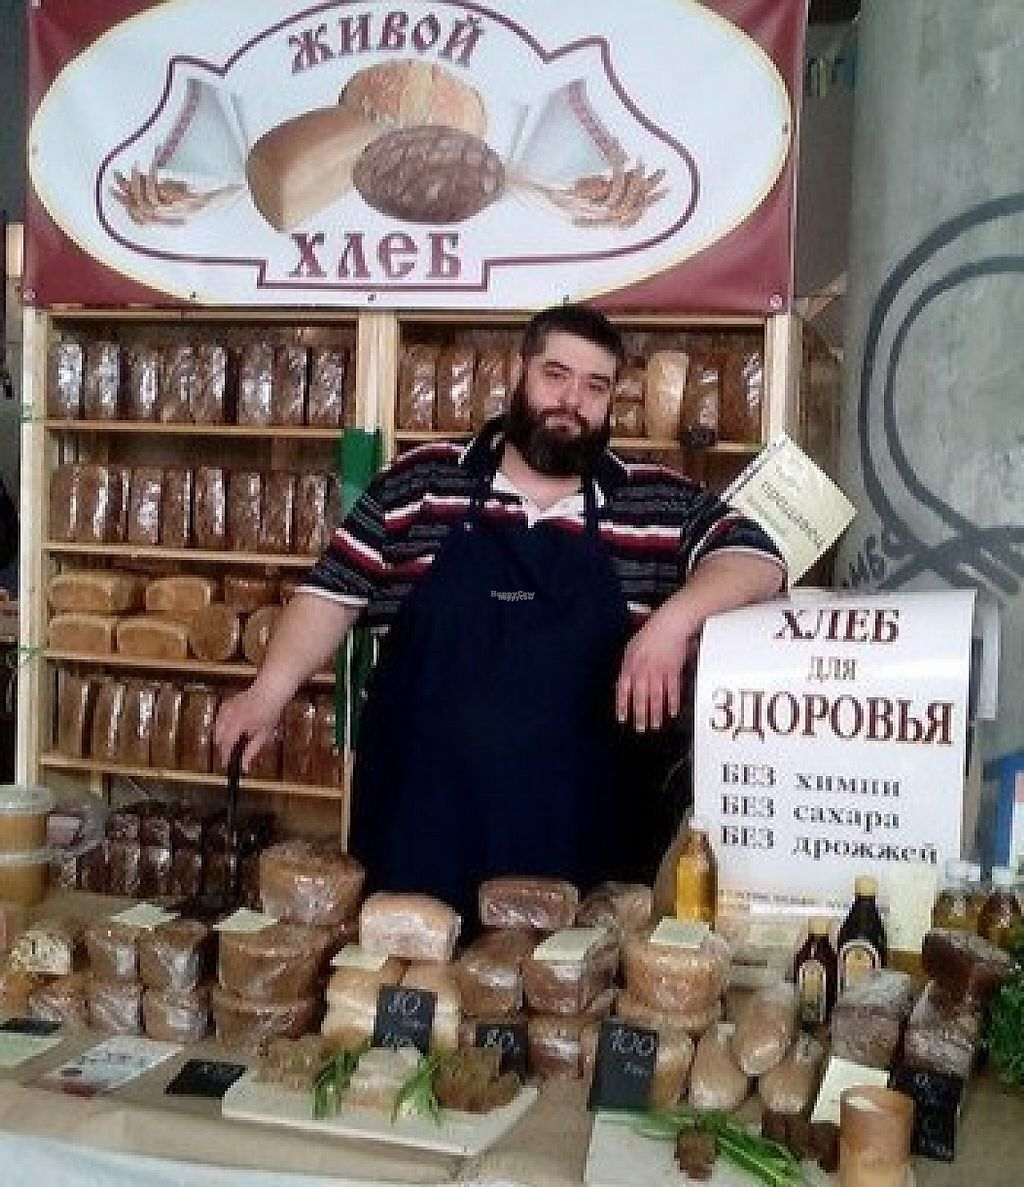 """Photo of Living Bread  by <a href=""""/members/profile/community"""">community</a> <br/>Living Bread <br/> February 4, 2017  - <a href='/contact/abuse/image/86637/222460'>Report</a>"""